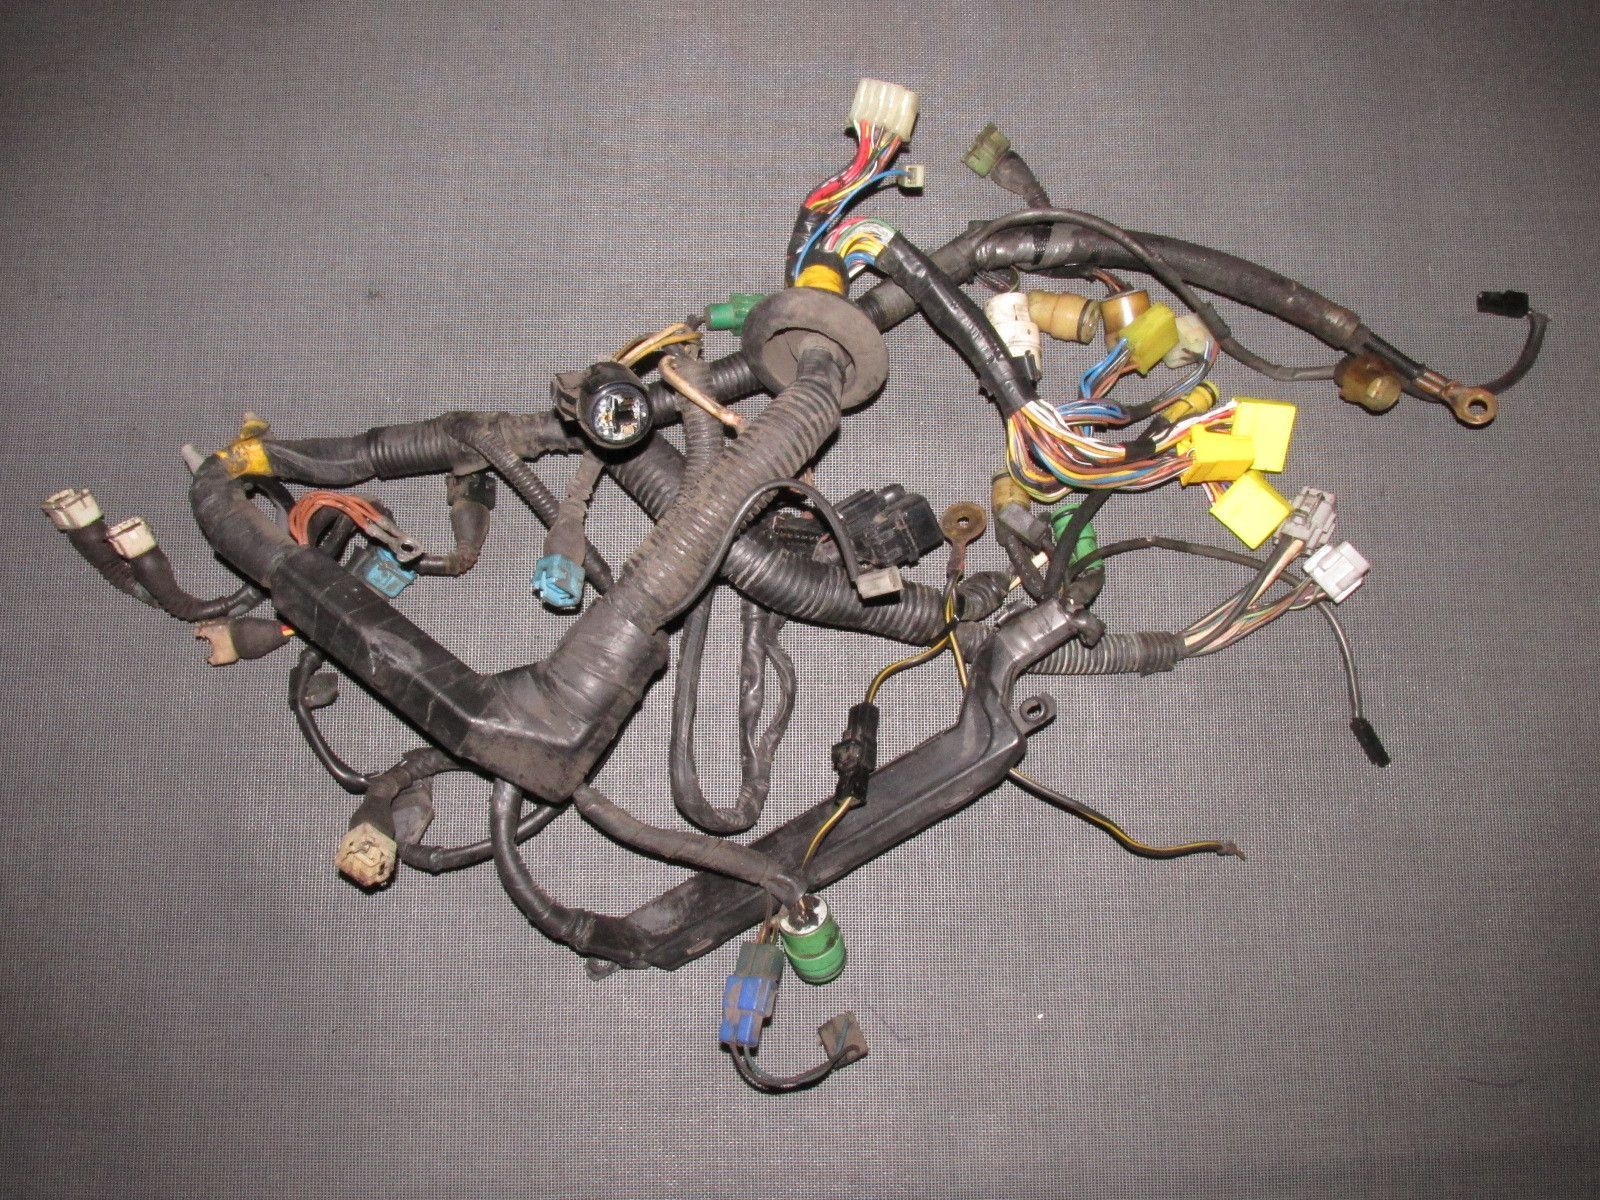 d6741621ba7ff6f0f218b3152e4d9c42 85 86 87 88 89 toyota mr2 oem 4age engine wiring harness toyota 4age wire harness at cos-gaming.co